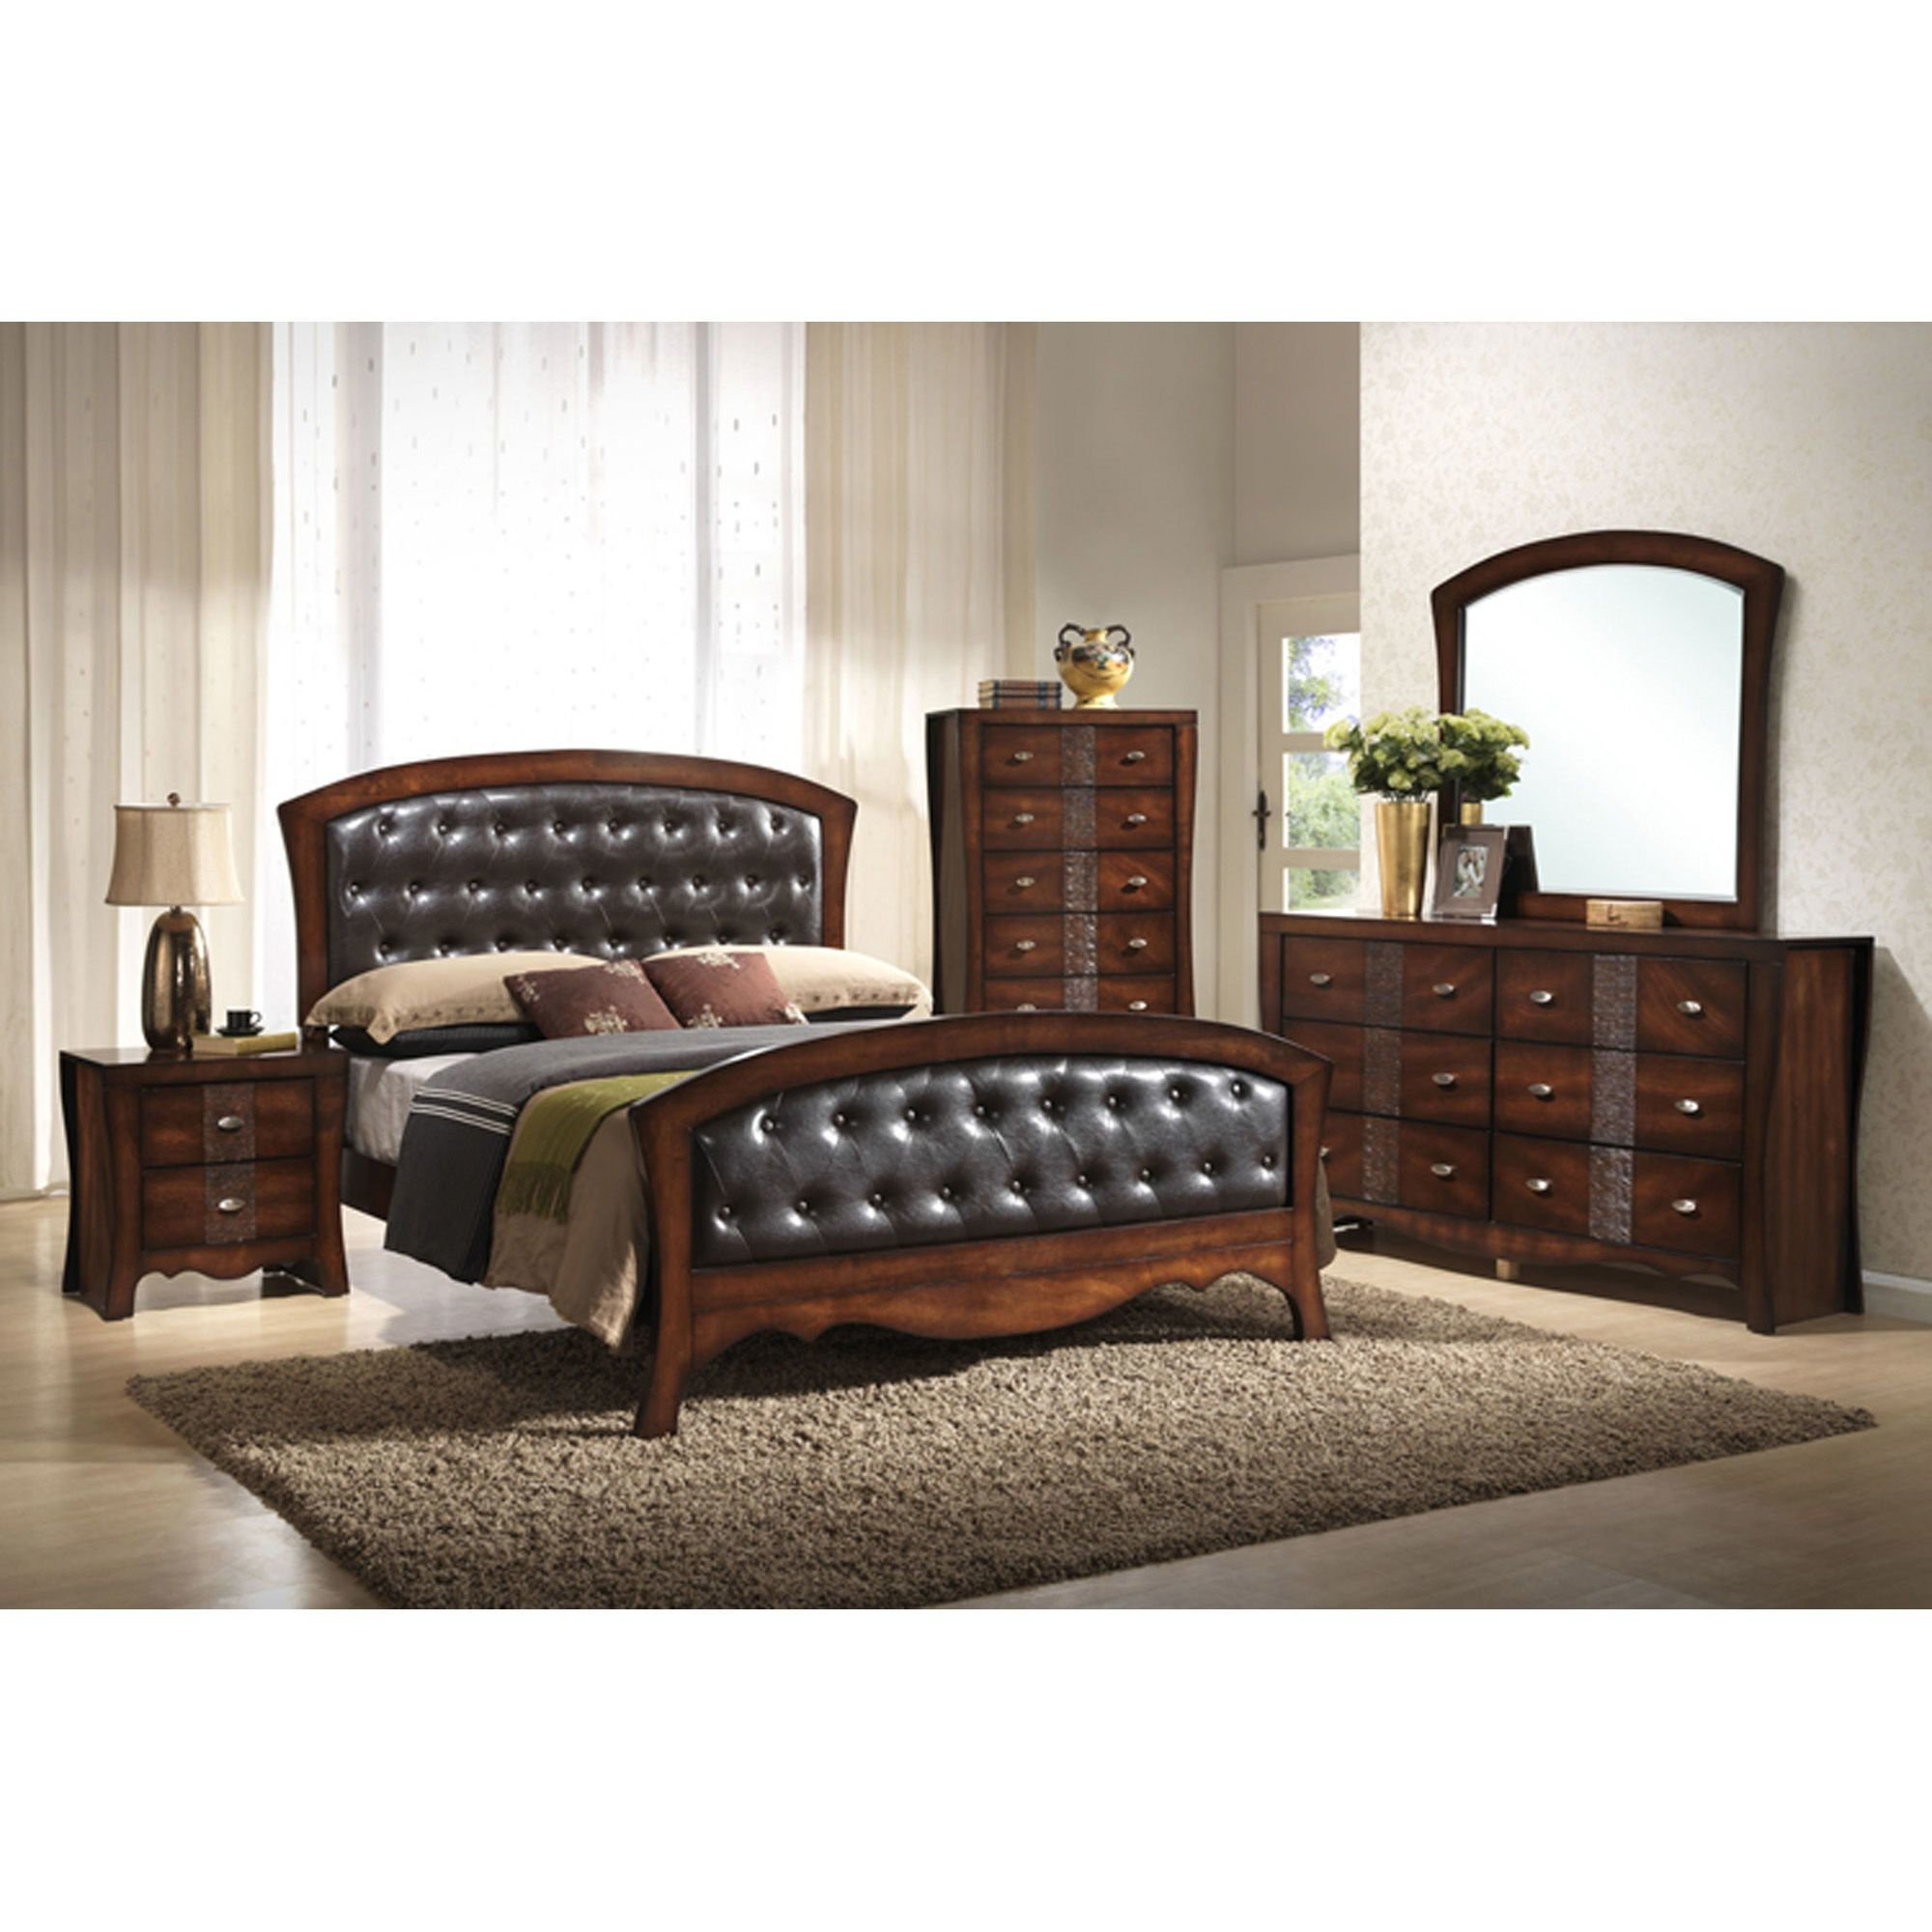 Best Elements Bedroom Groups 7 Piece Jenny Queen Bedroom Collection With Pictures